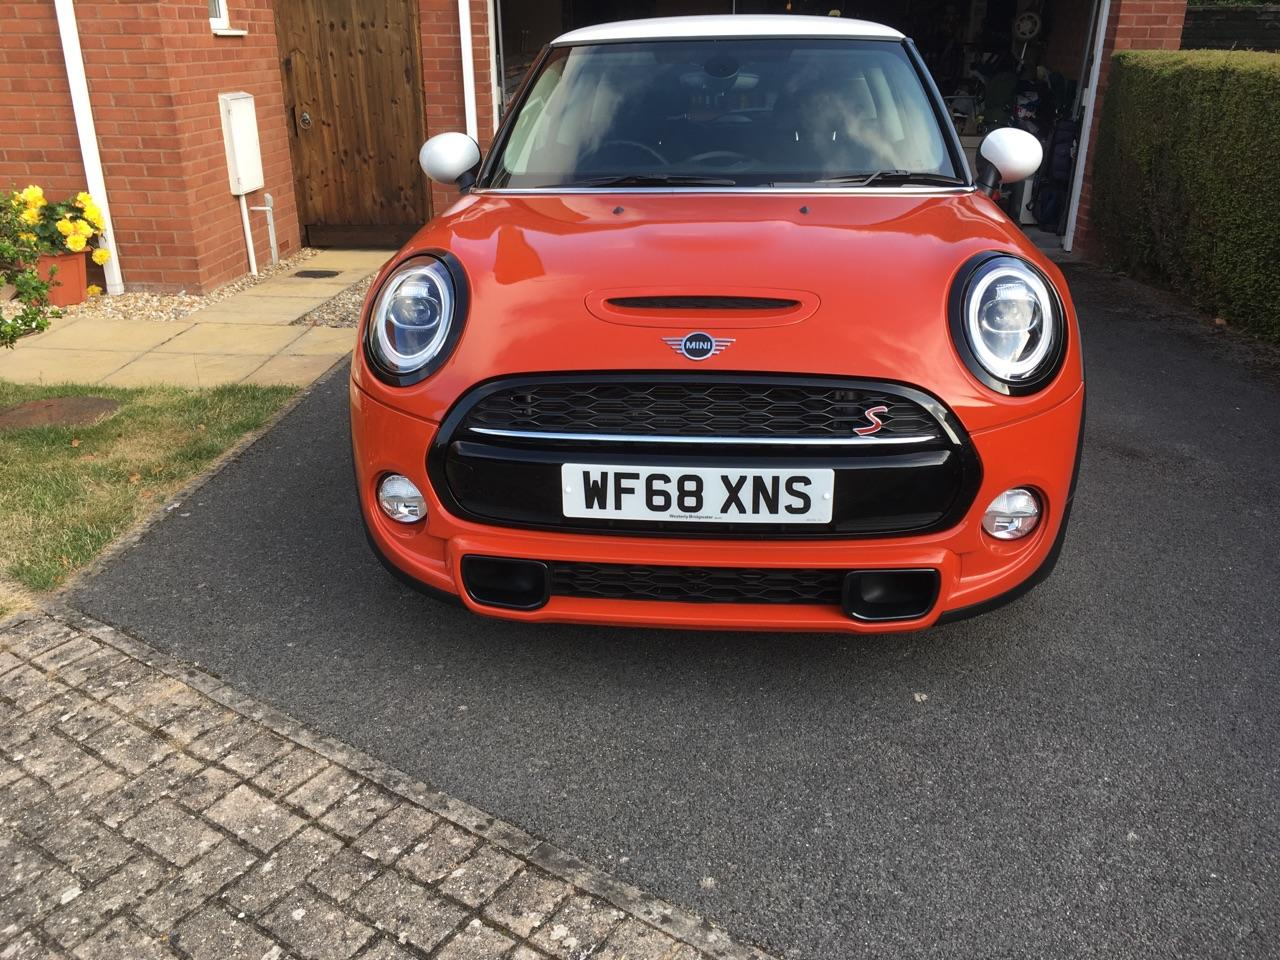 Mini Coupe 2.0 COOPER S Hatchback Petrol Orange